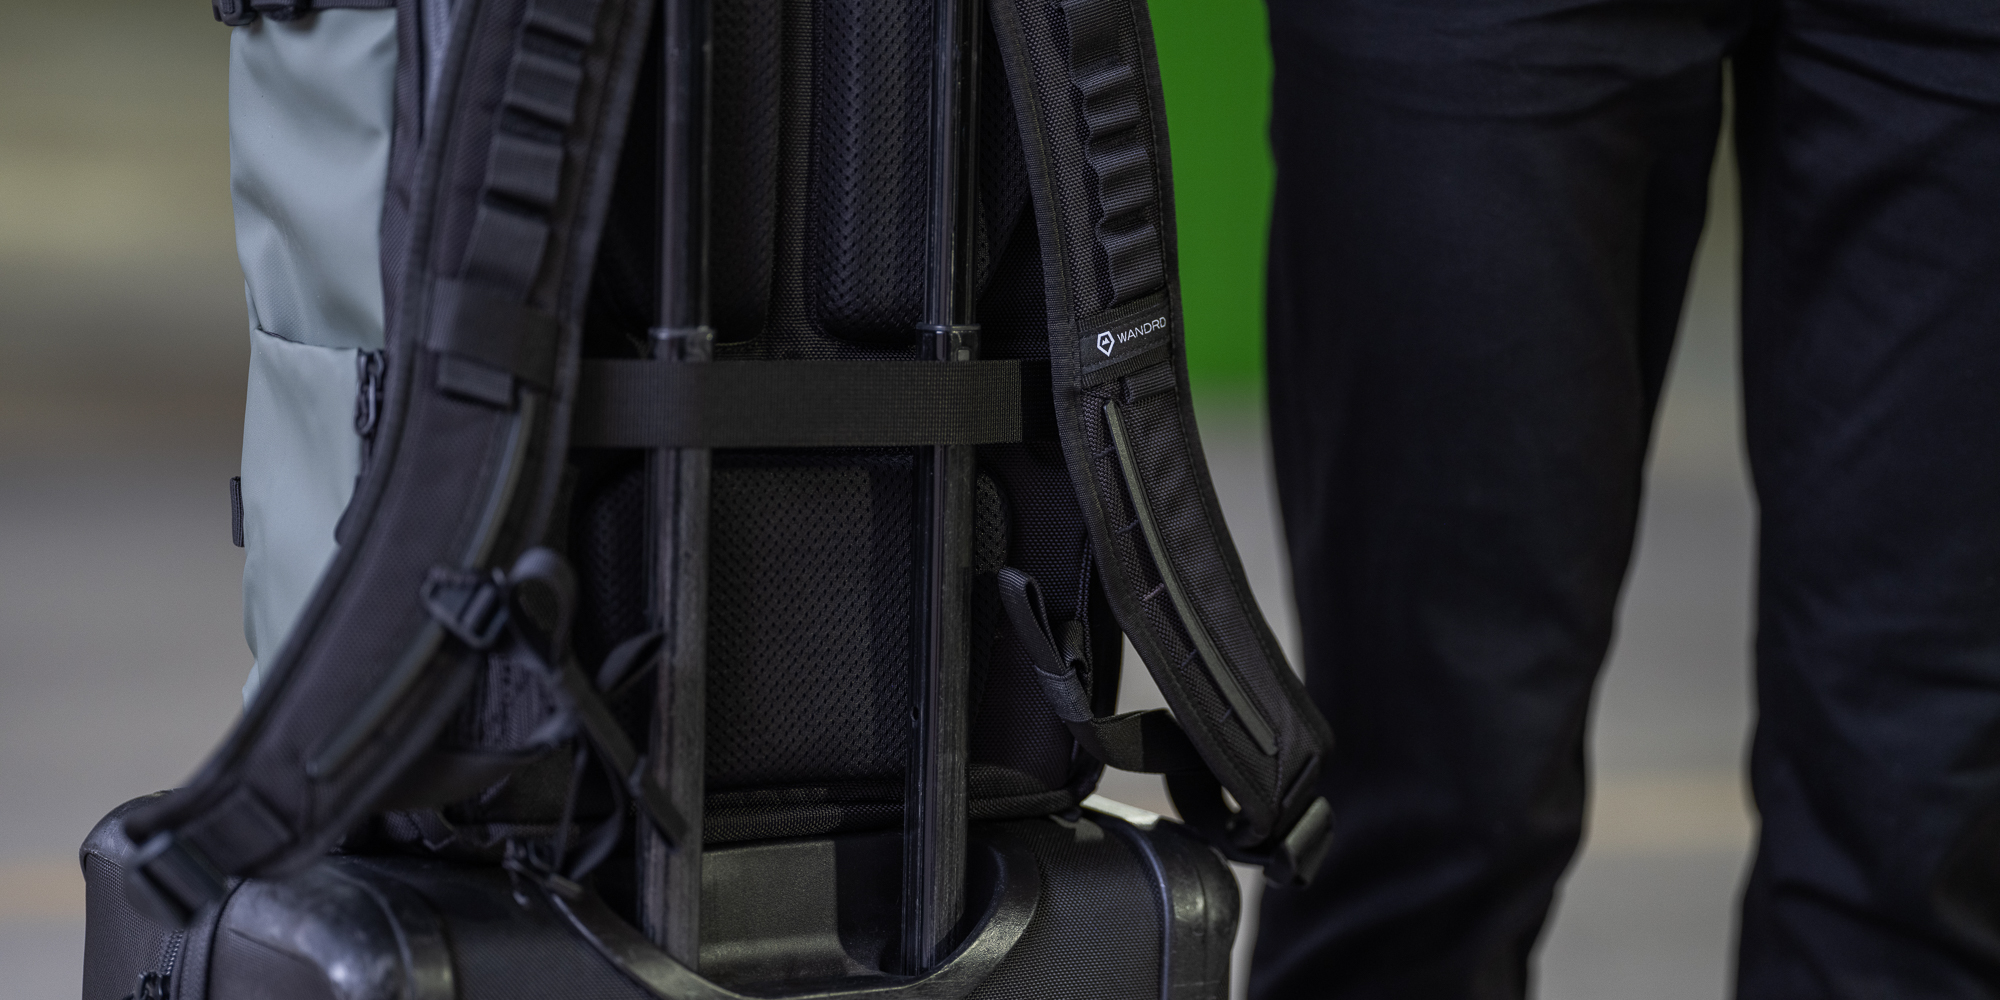 Wandrd All-new Prvke 41 Backpack - The Perfect Travel Companion